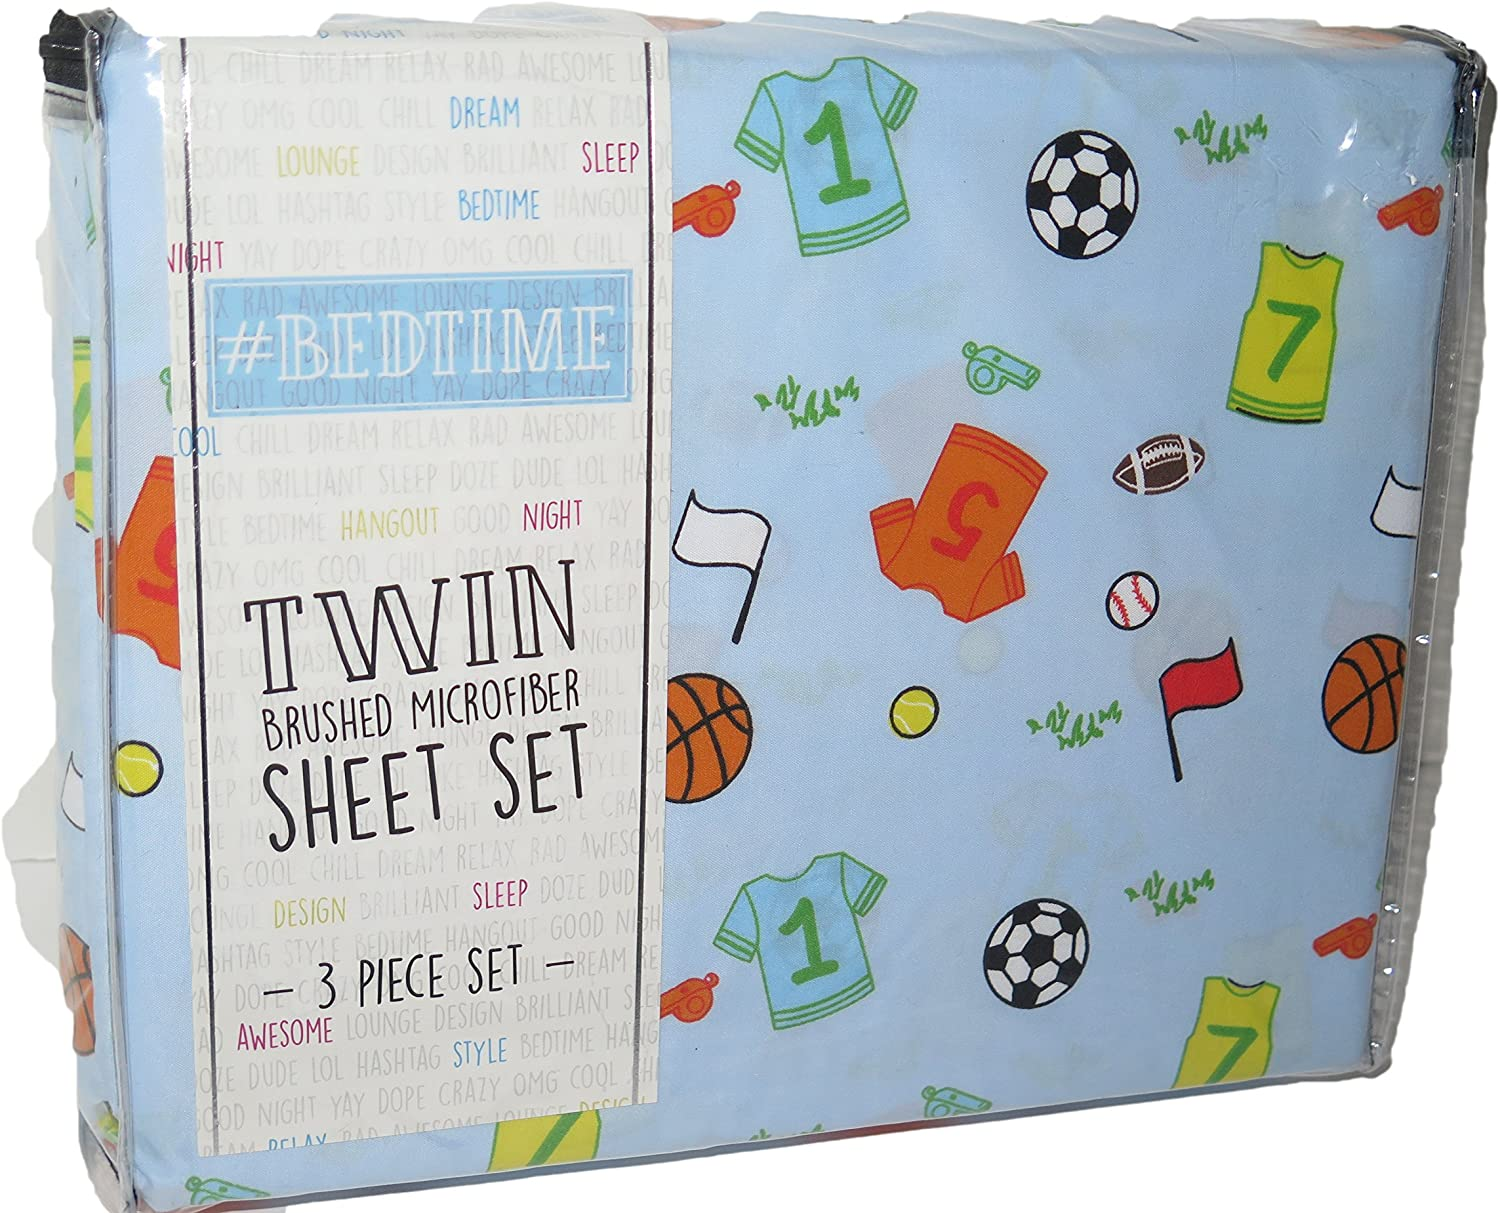 #Bedtime Sport Ball Jersey Shirt Print Blue Boy TWIN 3 Pc Sheet Set